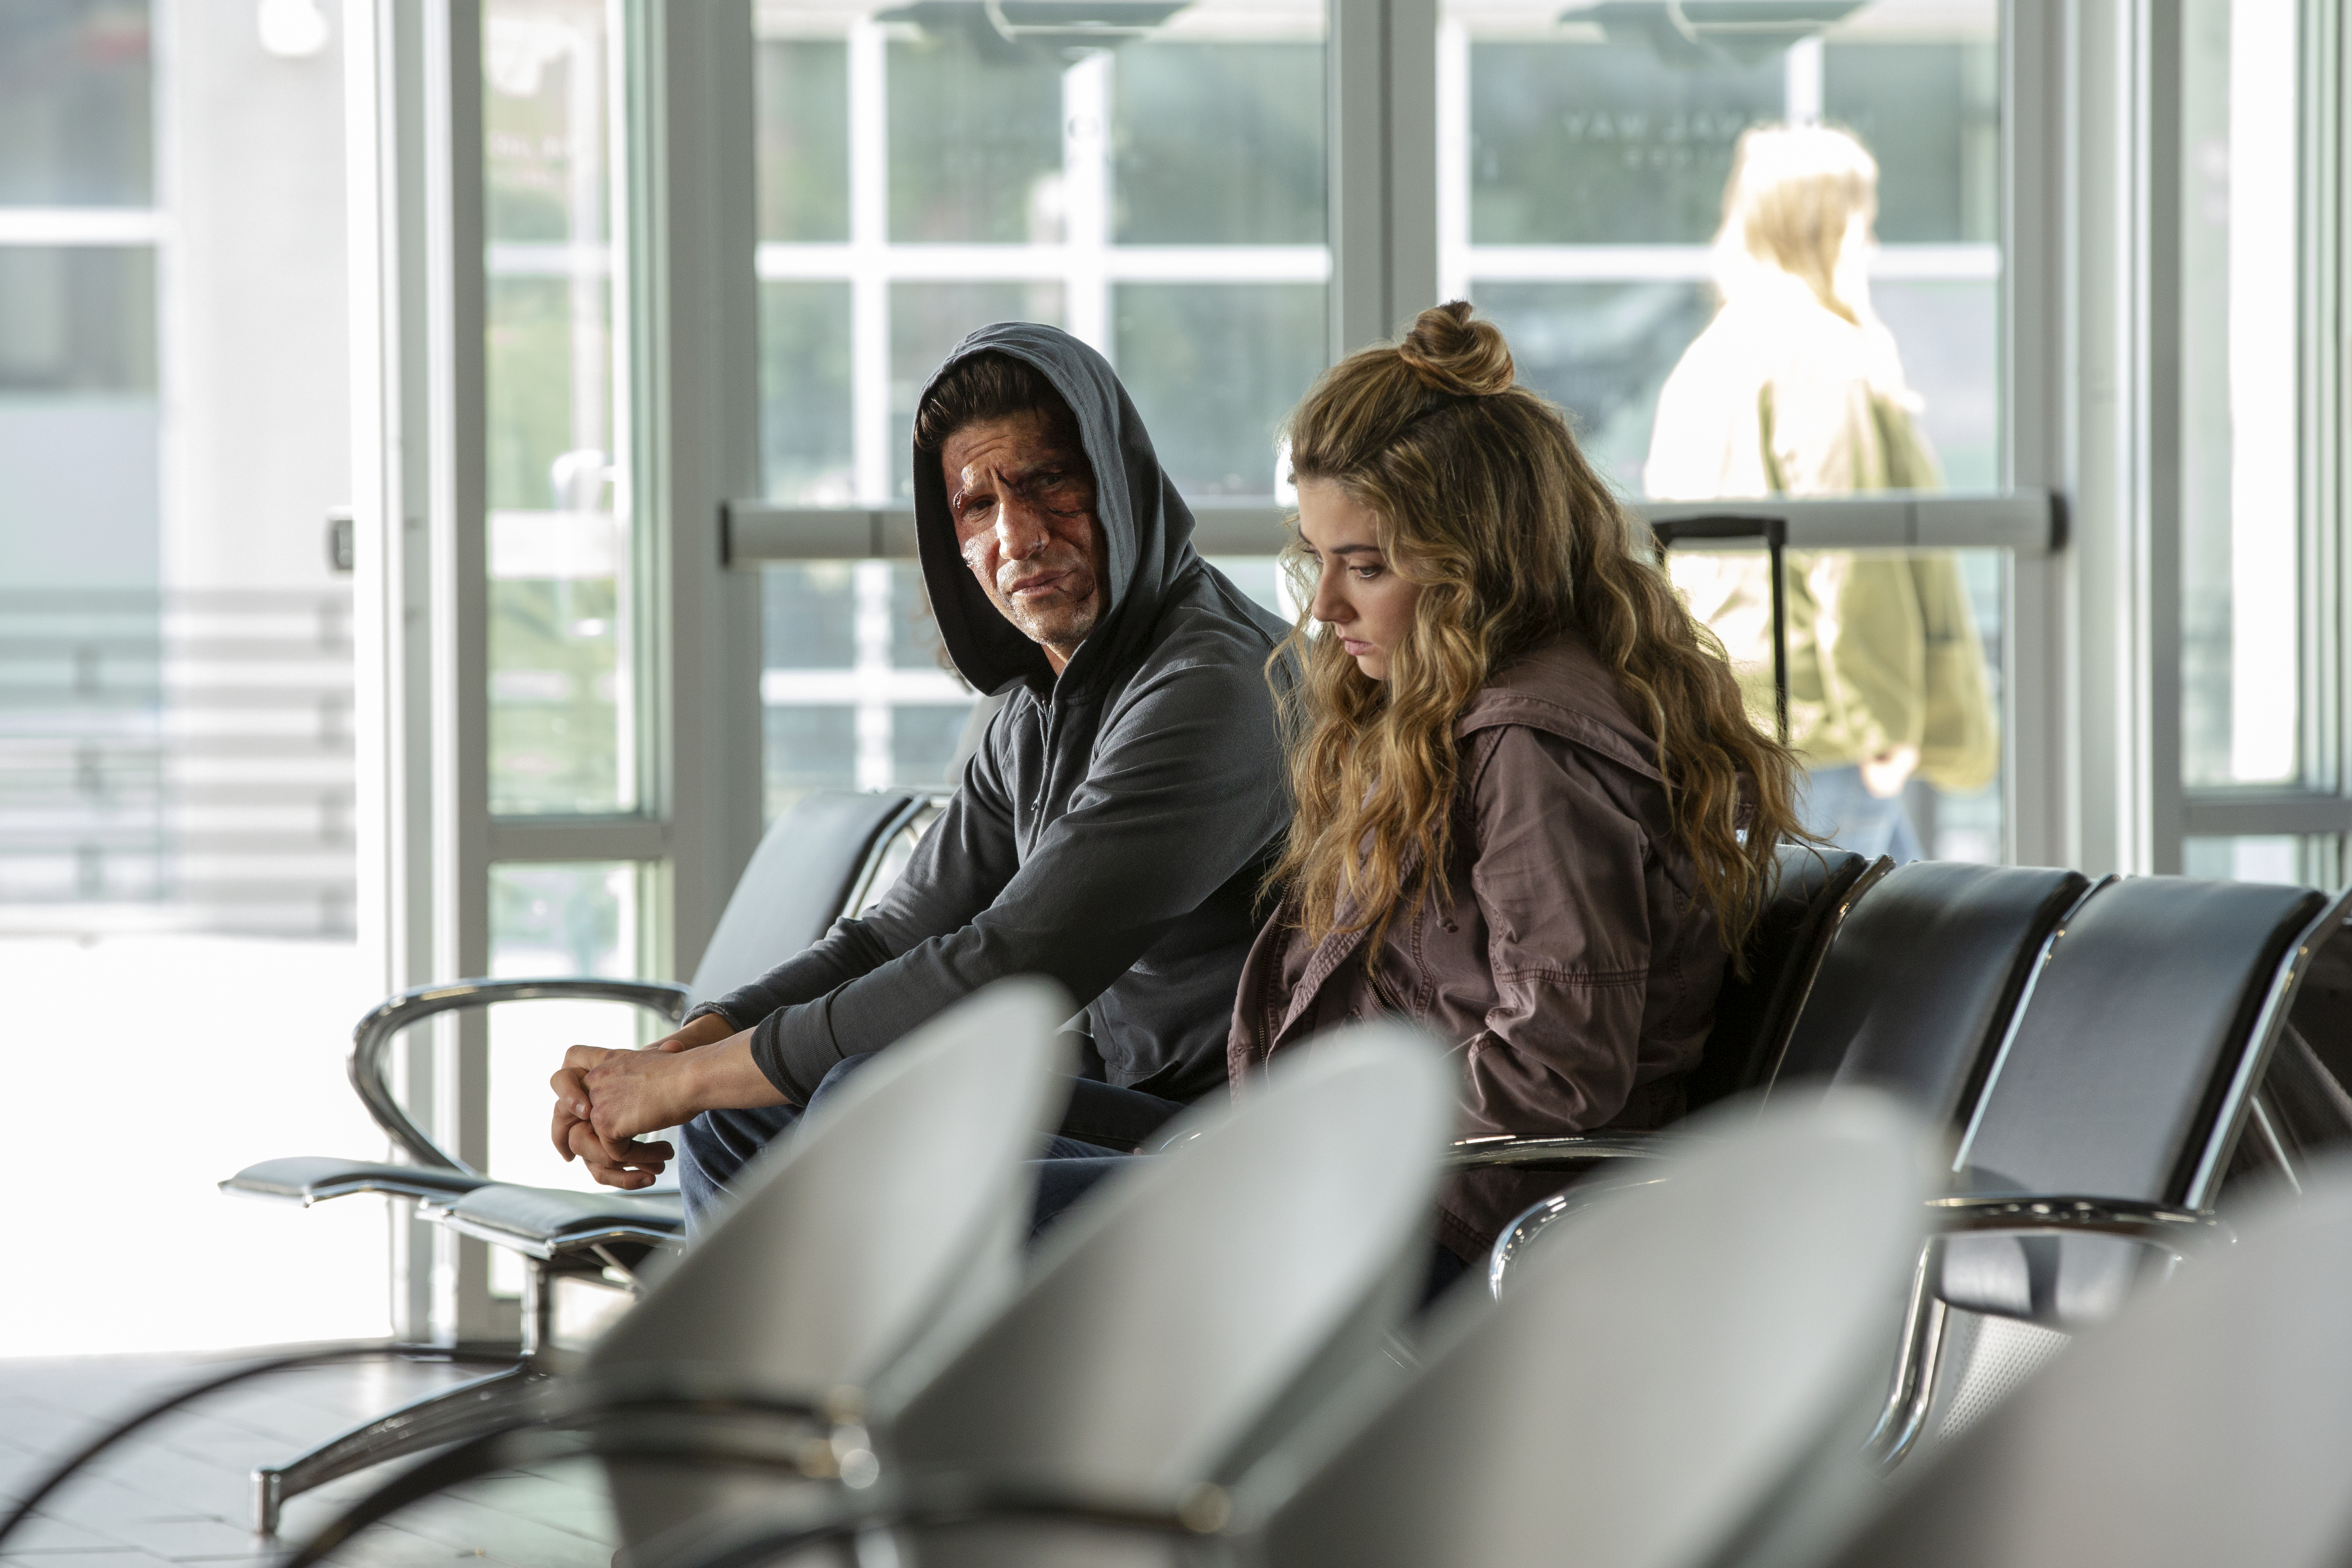 John Bernthal and Giorgia Whigham star in Marvel's The Punisher